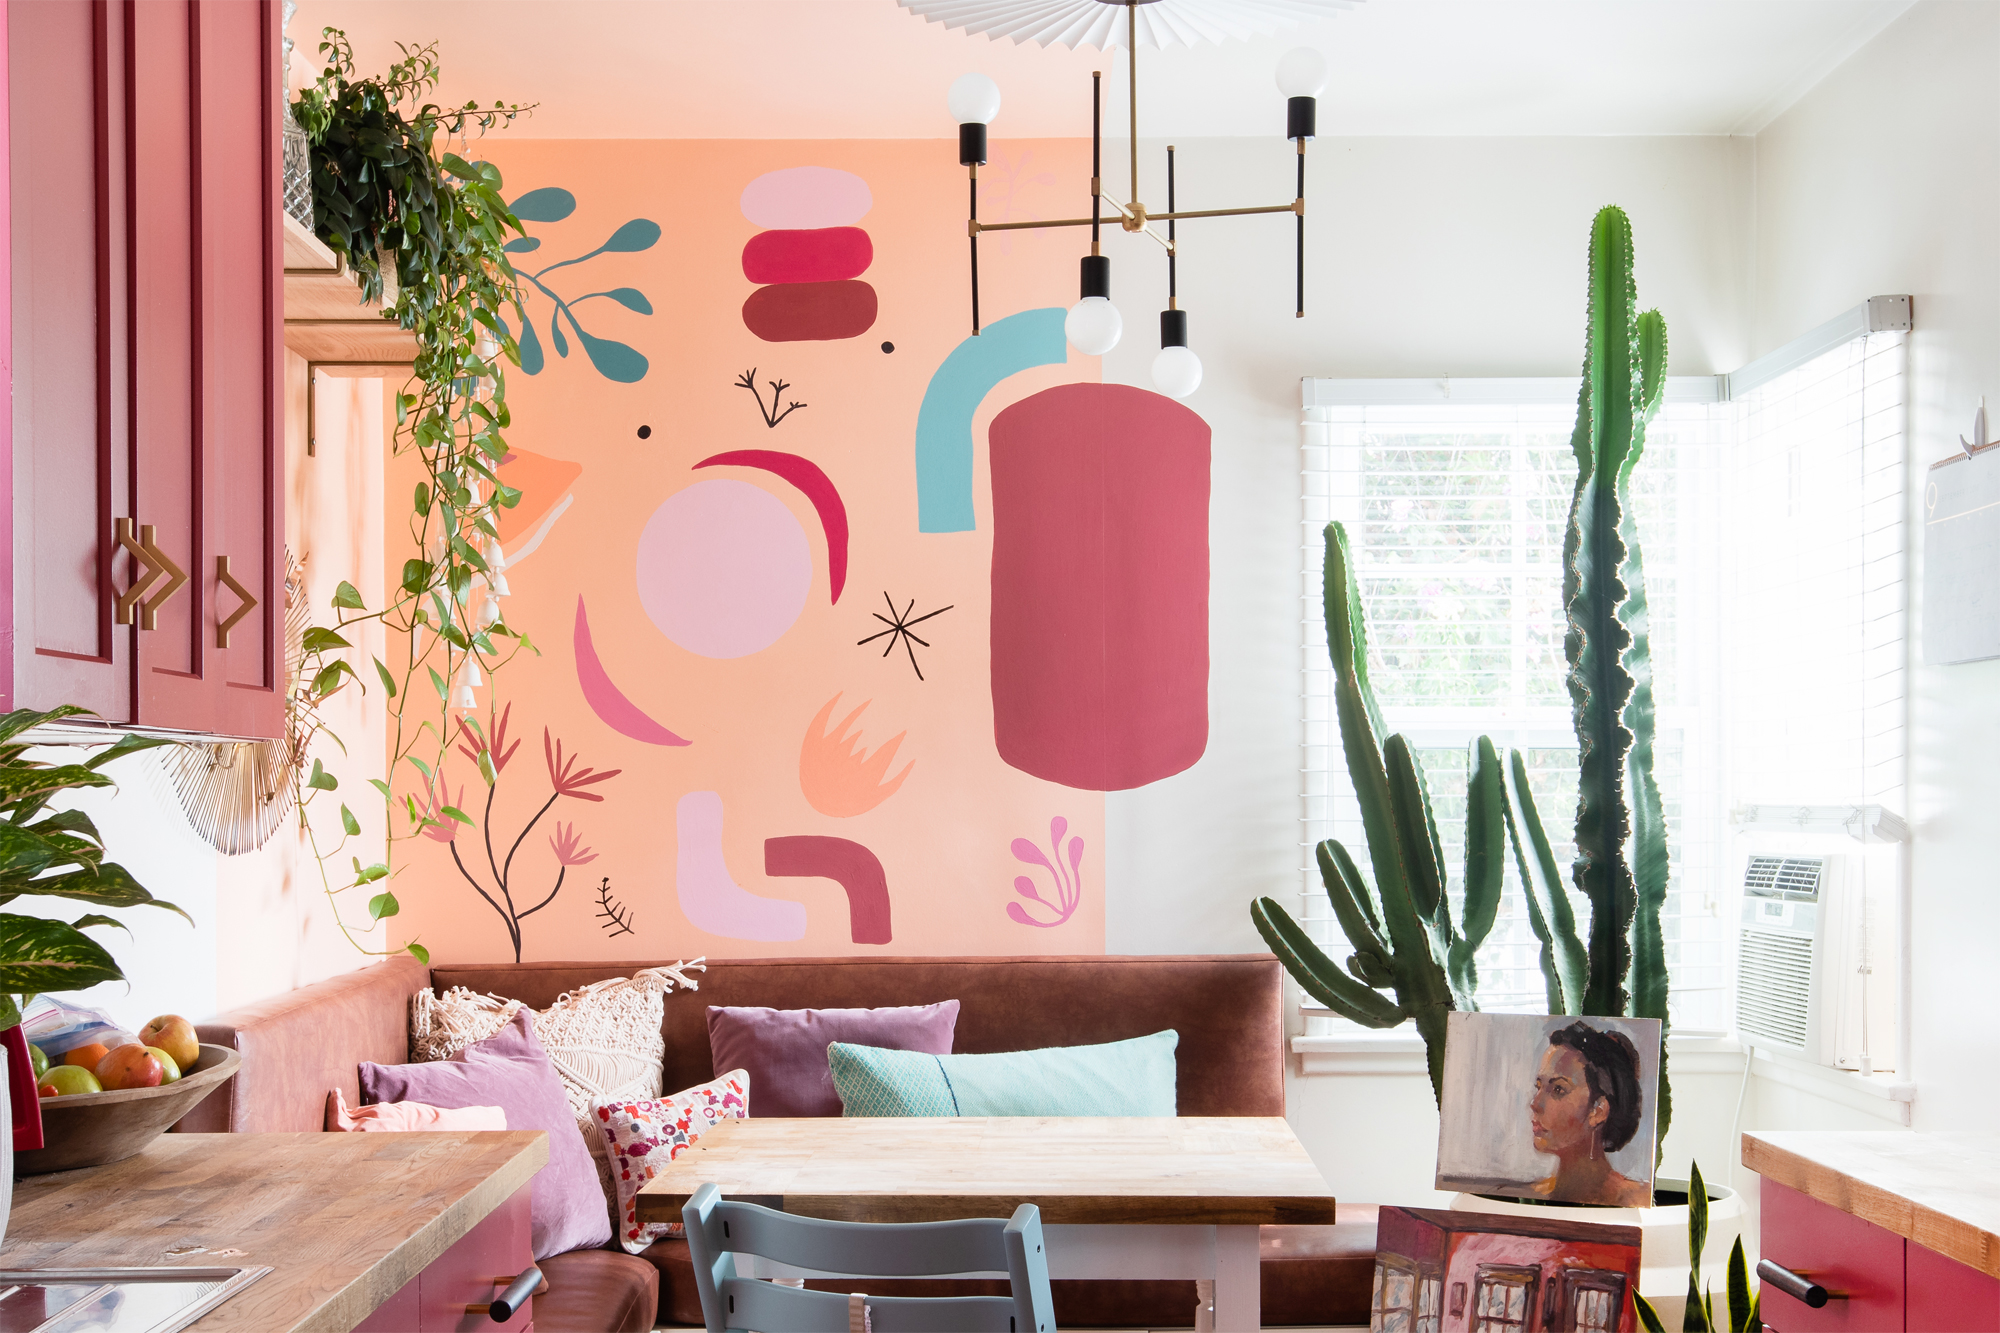 8 Wall Murals Even a Minimalist Could Love